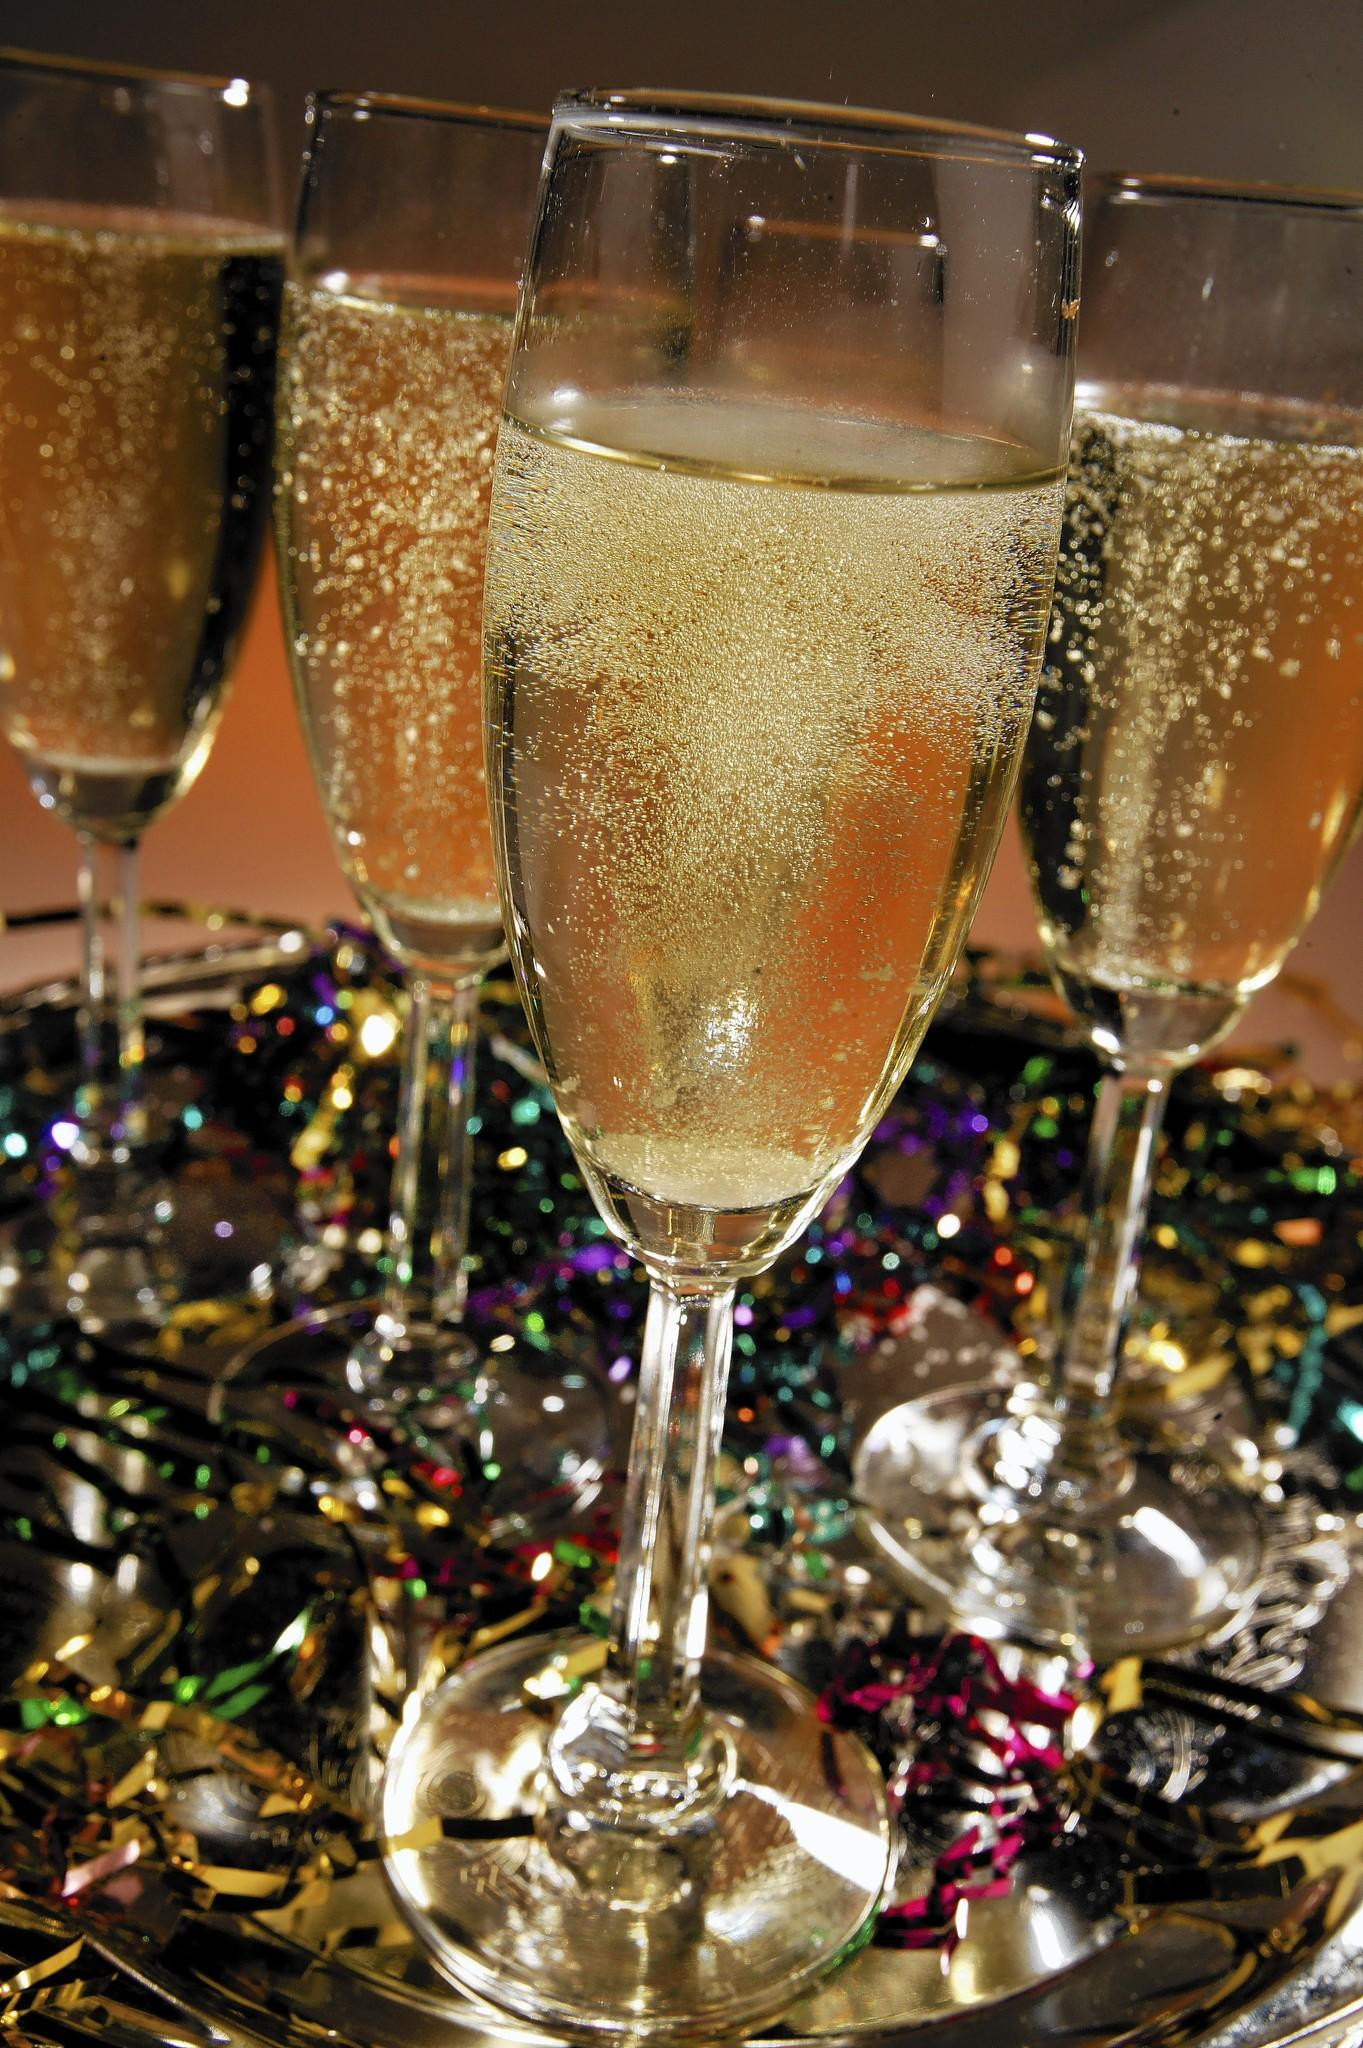 Holiday tidings with 'bubbly'. Chicago Tribune photos by Bob Fila.